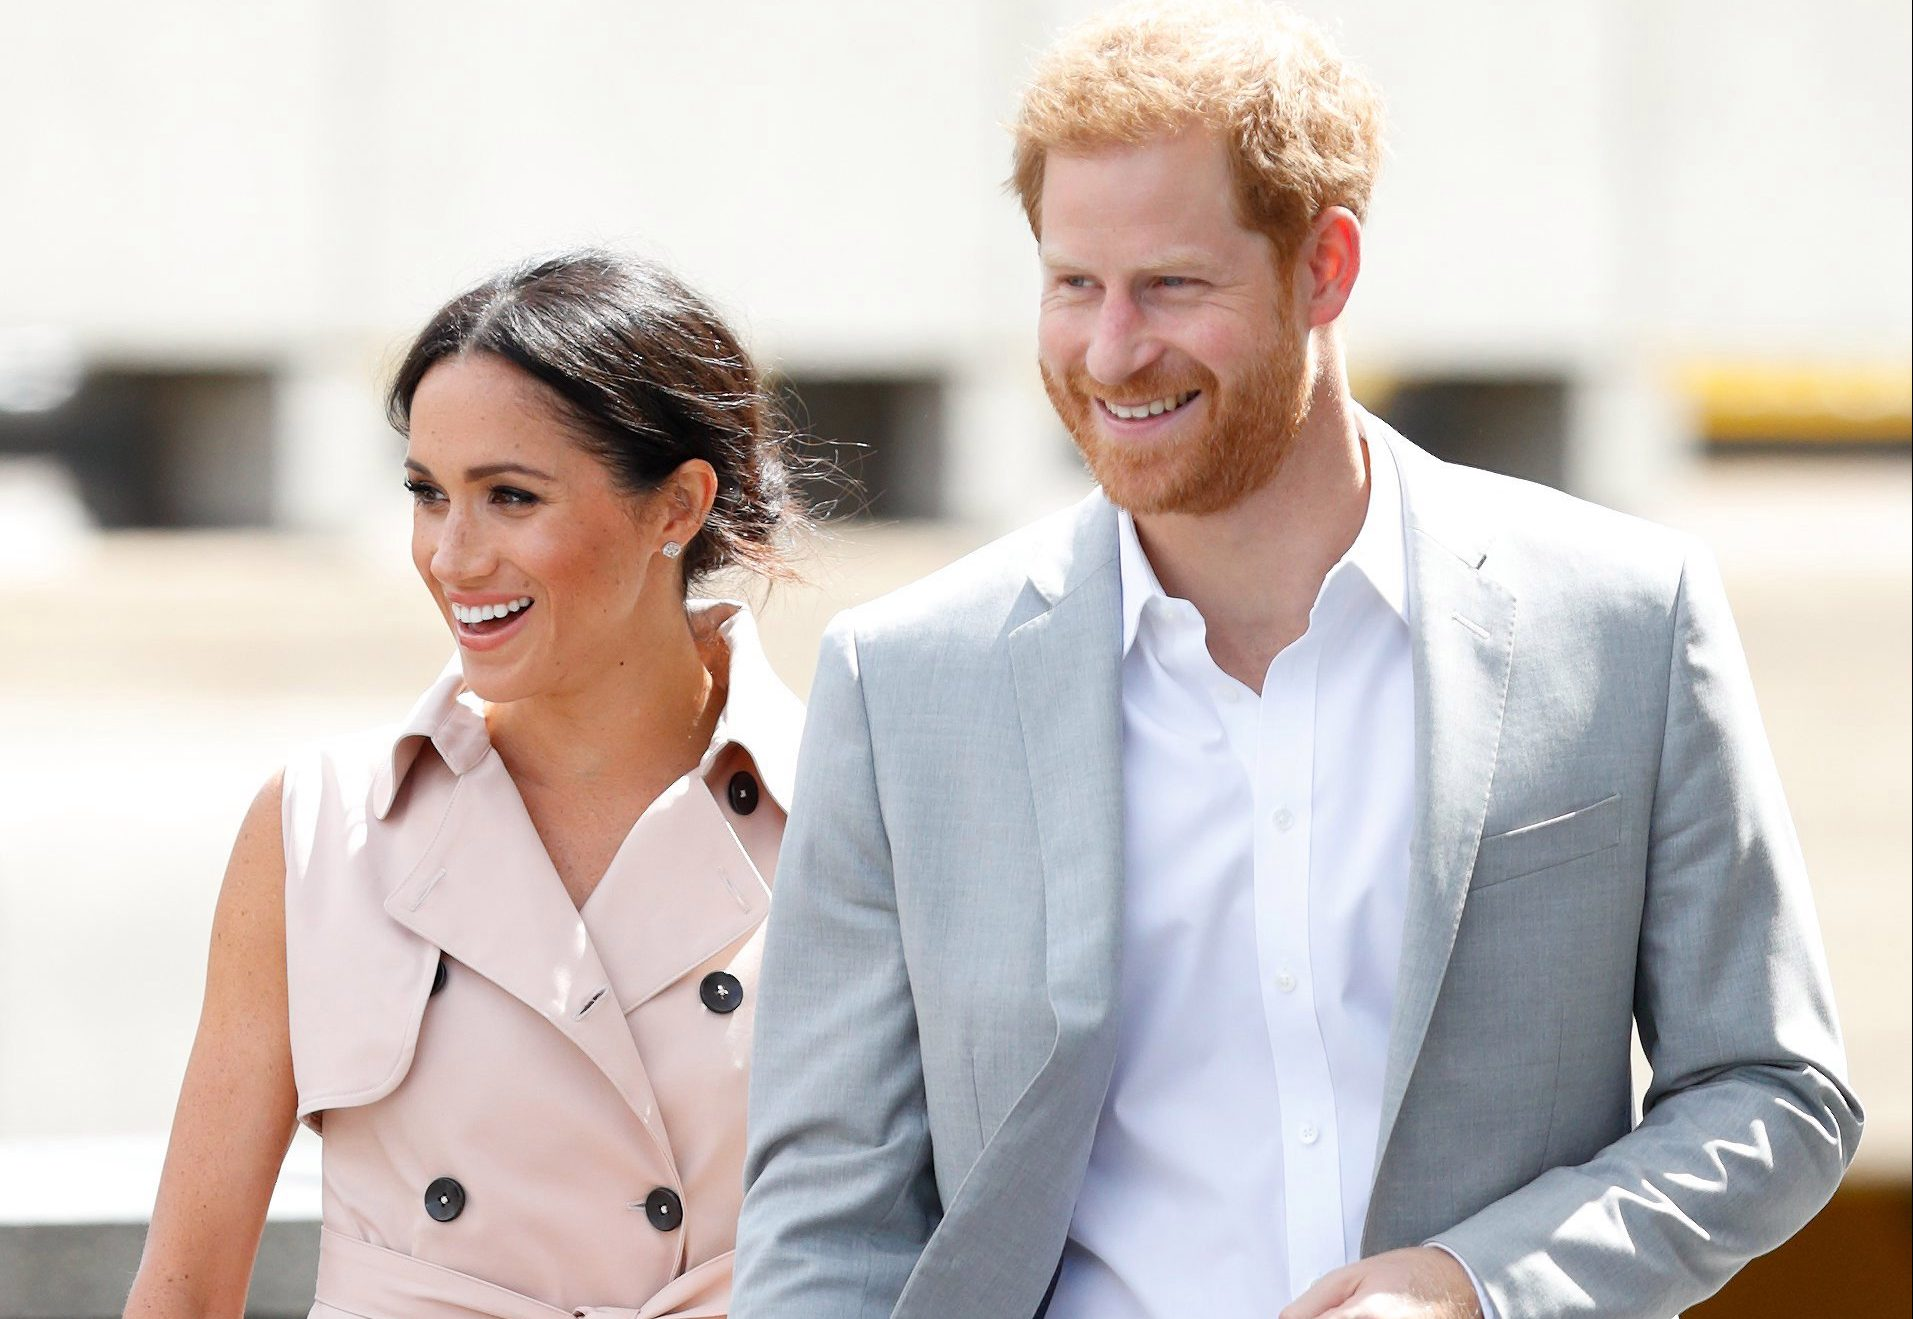 Royal baby name odds suggest there's a chance he's named after Meghan's estranged dad Thomas